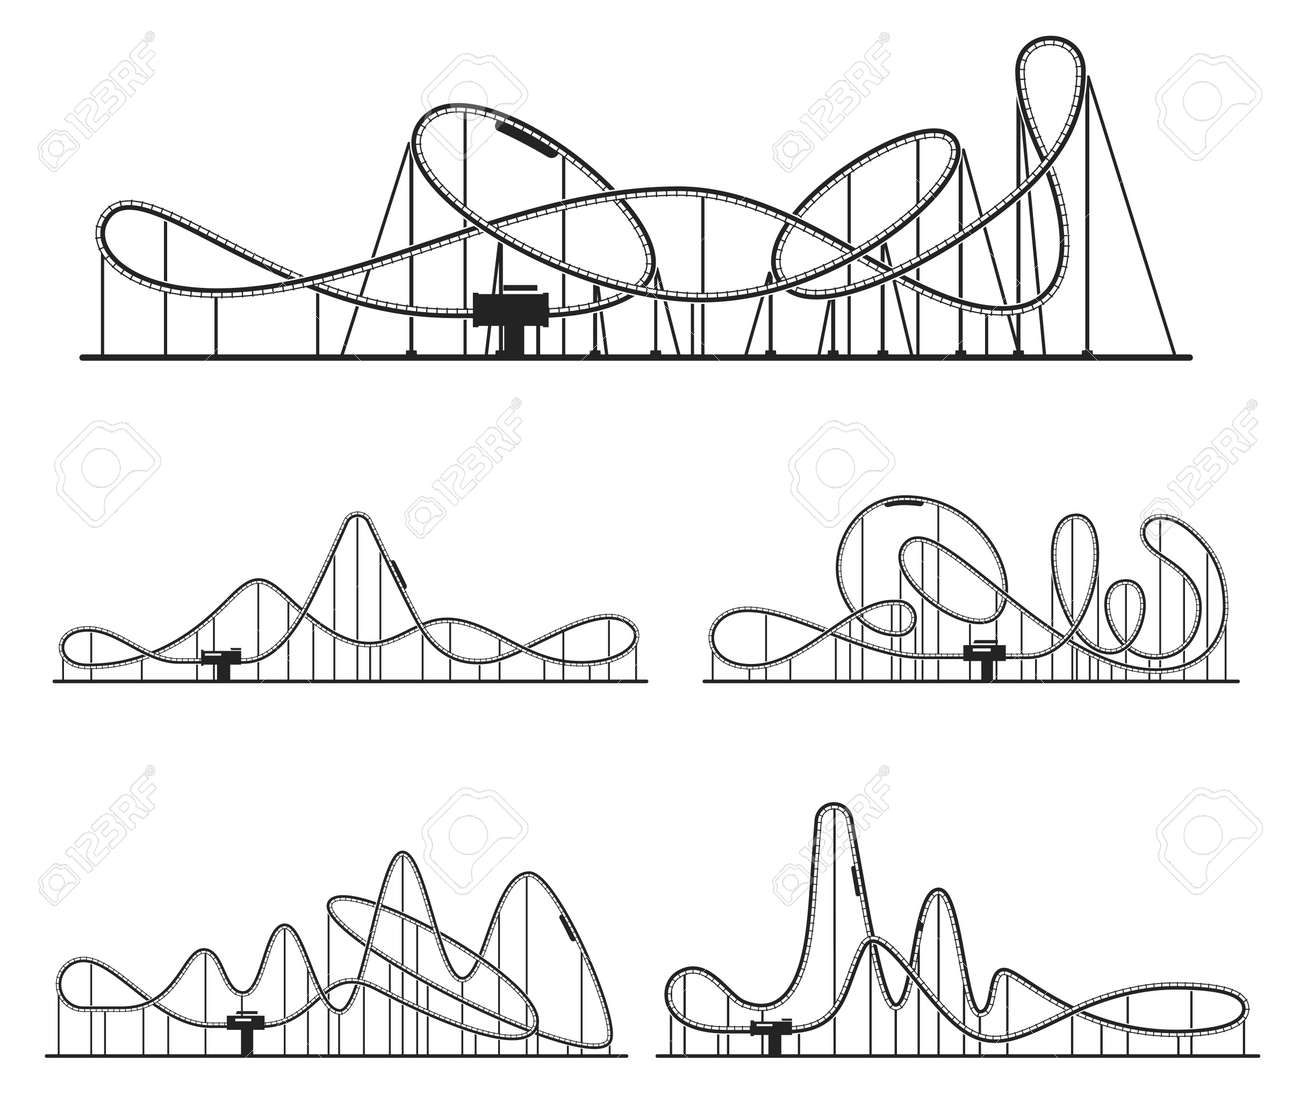 Roller coaster various route set. Amusement rides collection. Railroad tracks with tight turns. - 159566986